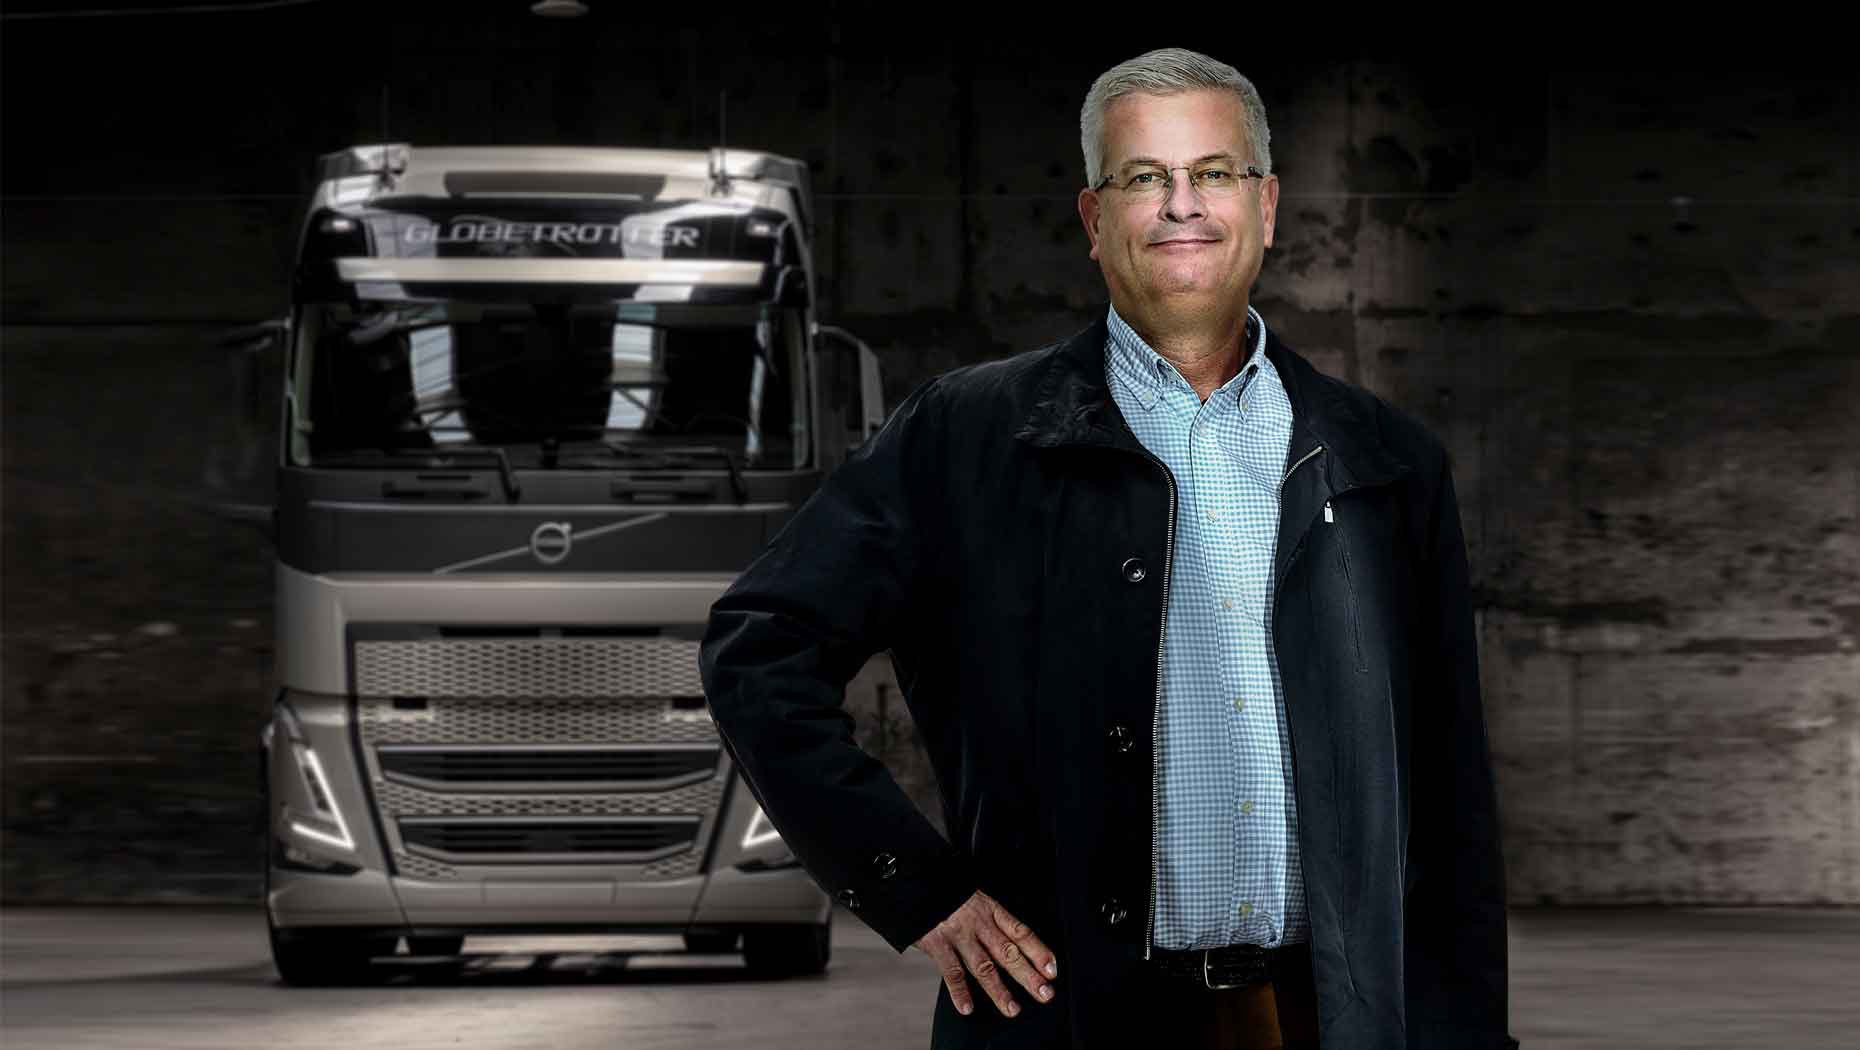 Tomas Thuresson, Commercialisation Manager, stands in front of the new Volvo FH with I-Save